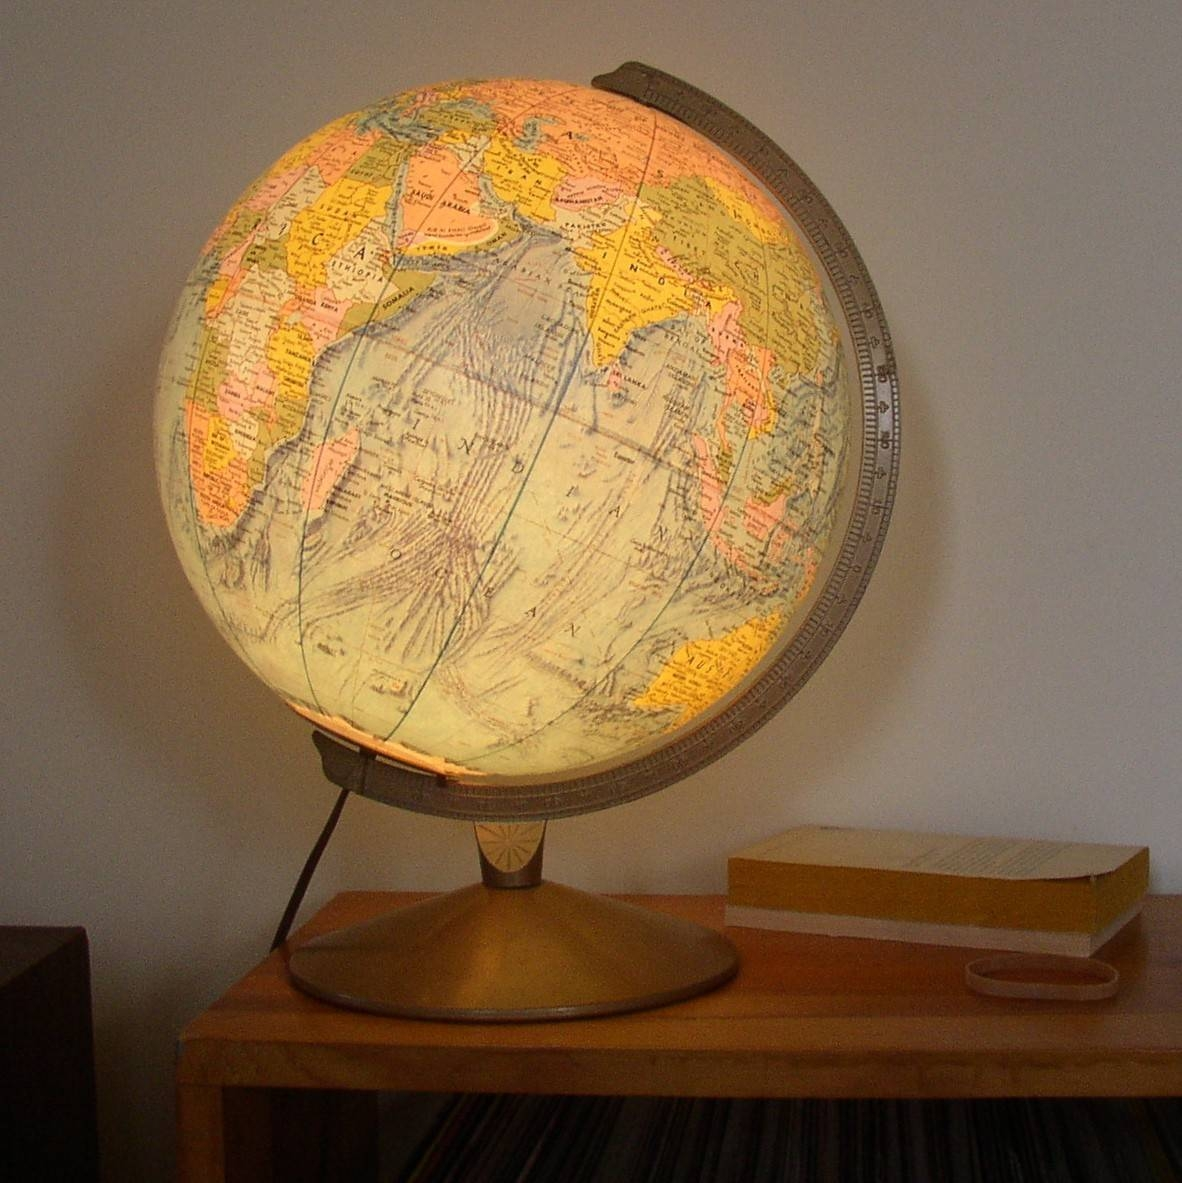 Open The Light Of The World With World Globe Lamps | Warisan Lighting pertaining to World Globe Lights Fixtures (Image 12 of 15)